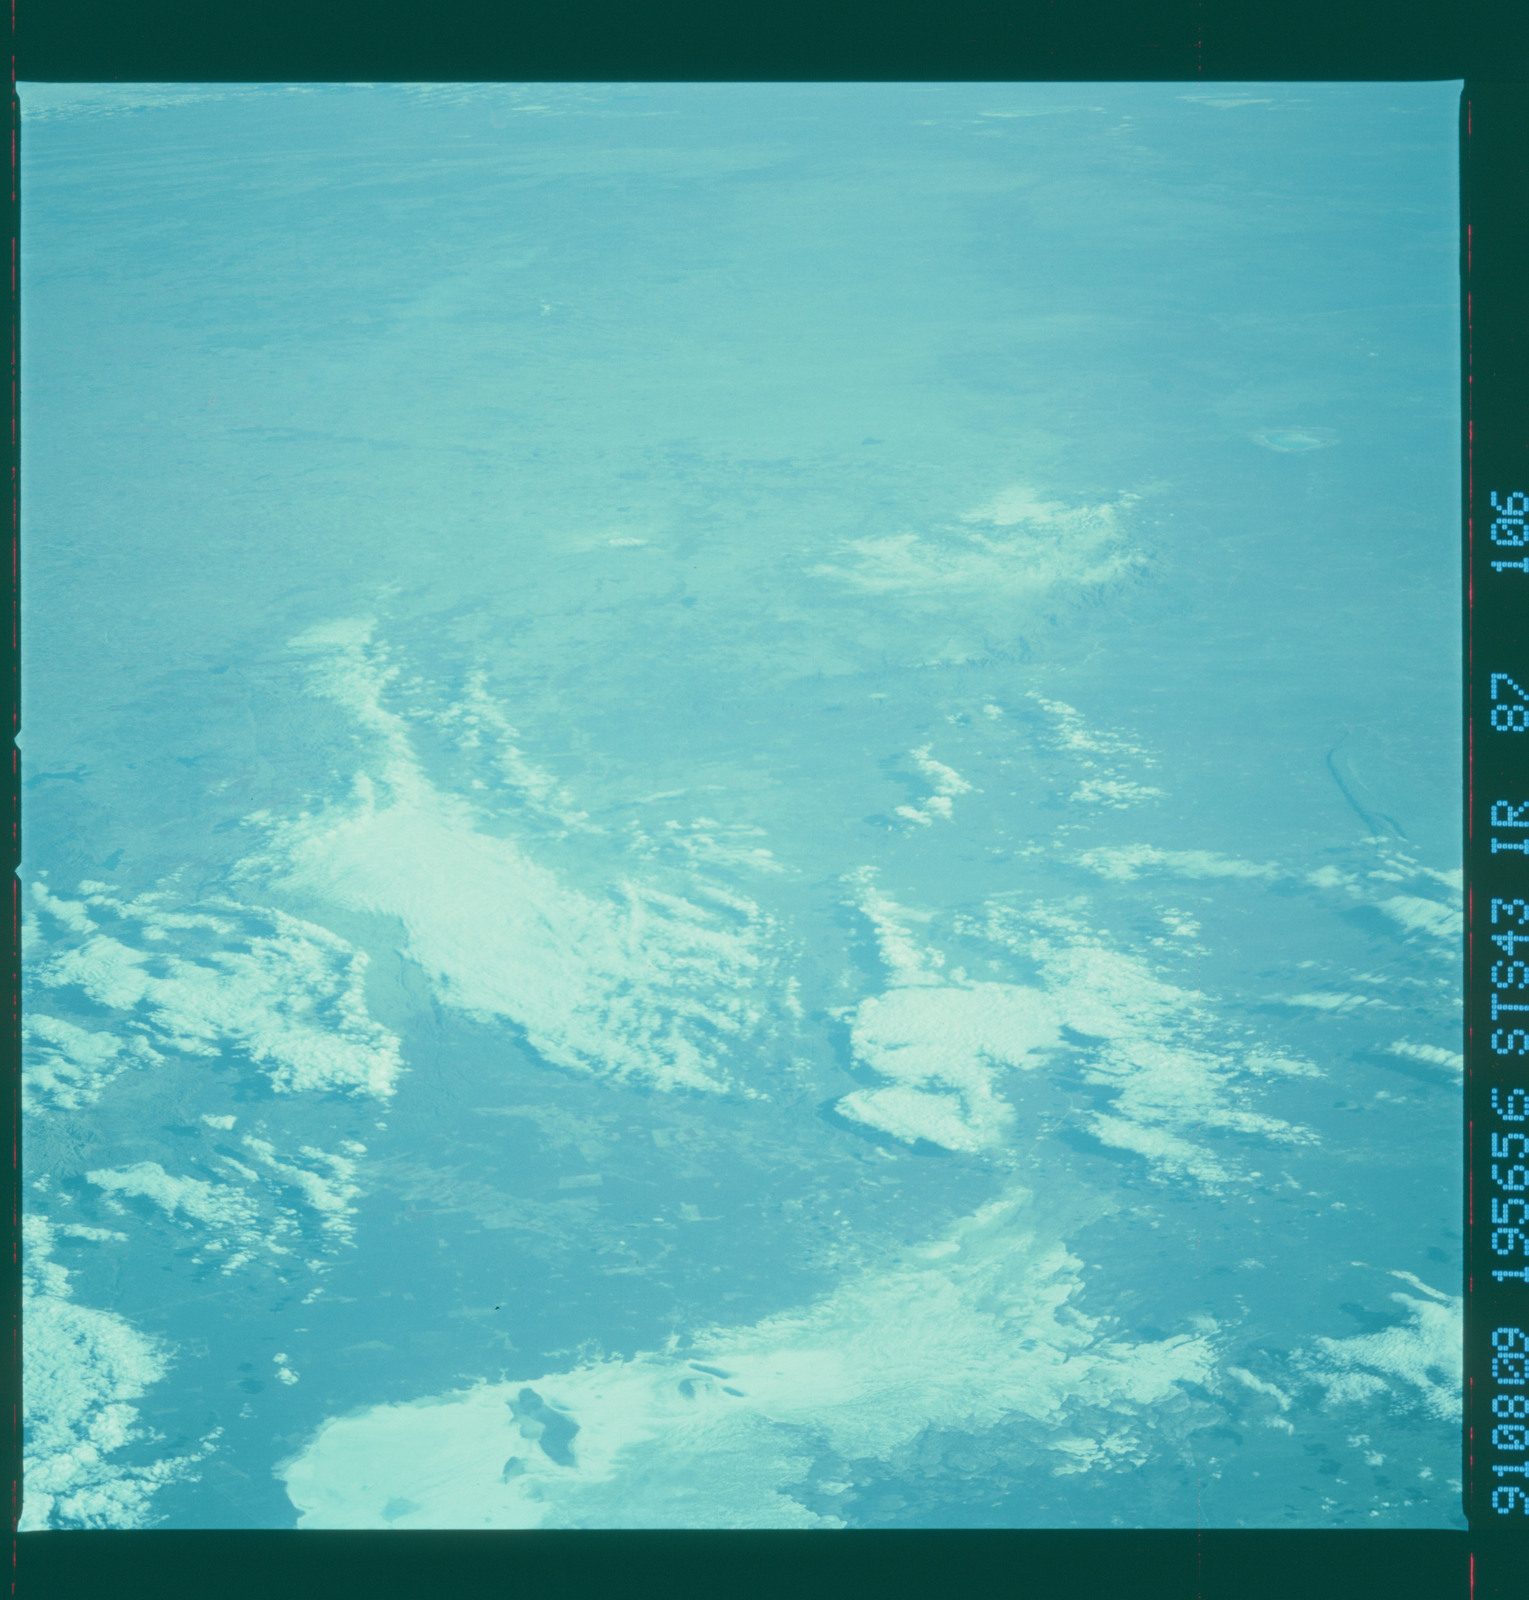 S43-87-106 - STS-043 - STS-43 earth observations